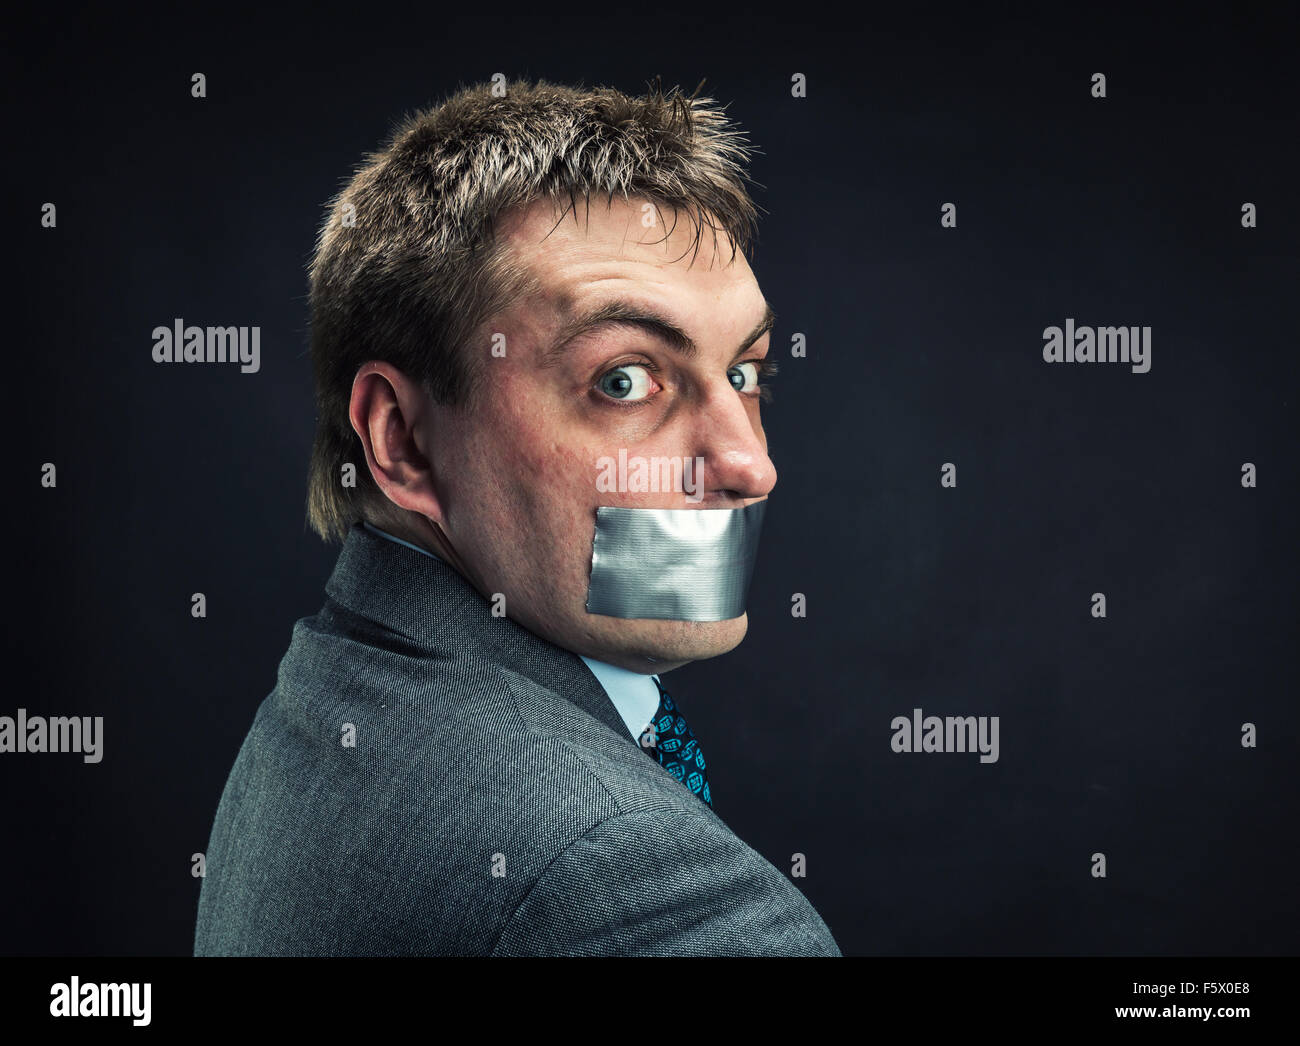 Man with mouth covered by masking tape ,studio shoot - Stock Image